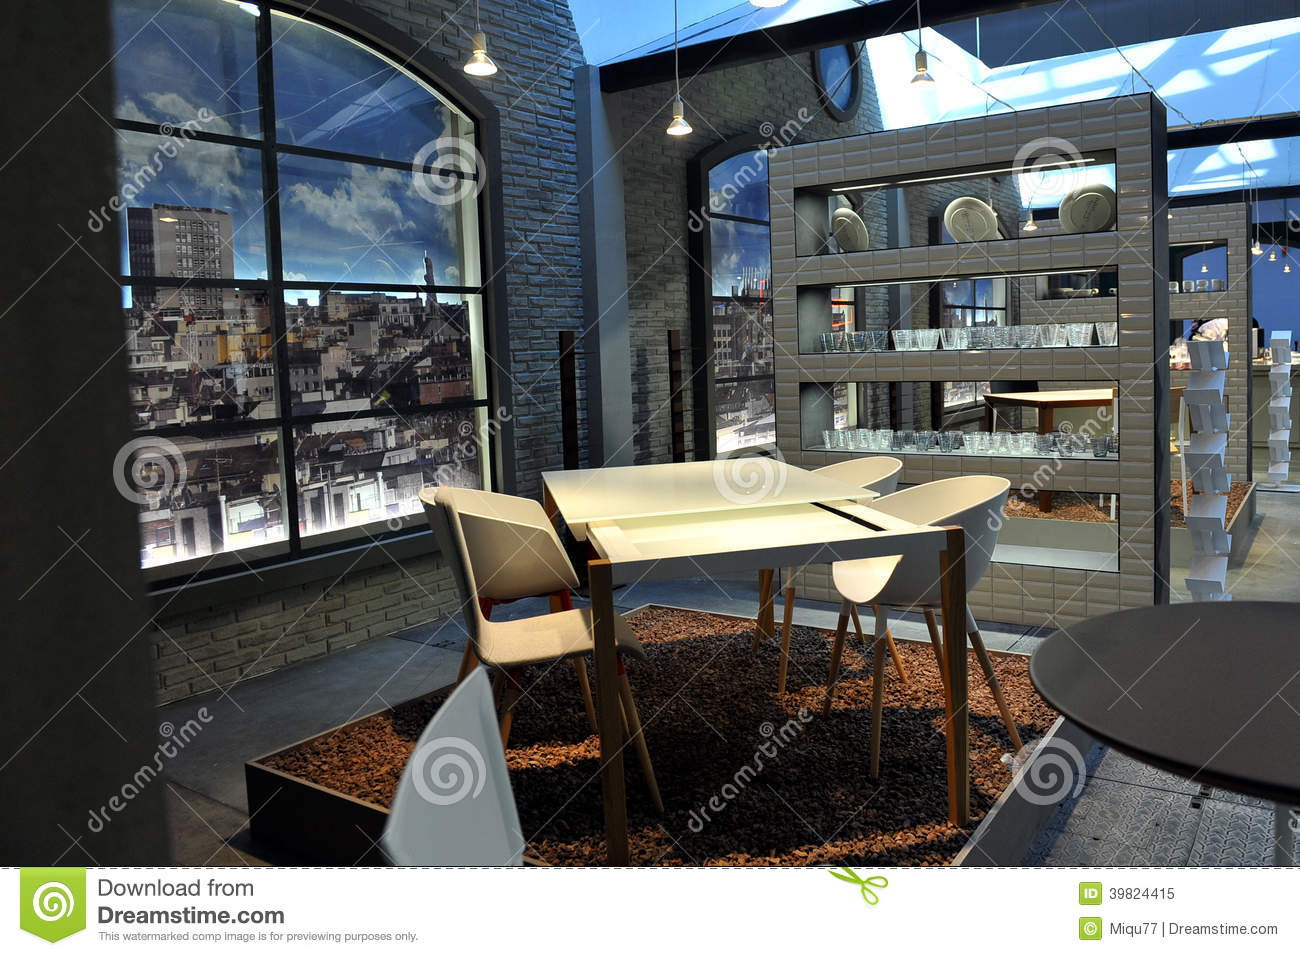 Salone del mobile 2014 editorial image image of design for Interior design solutions